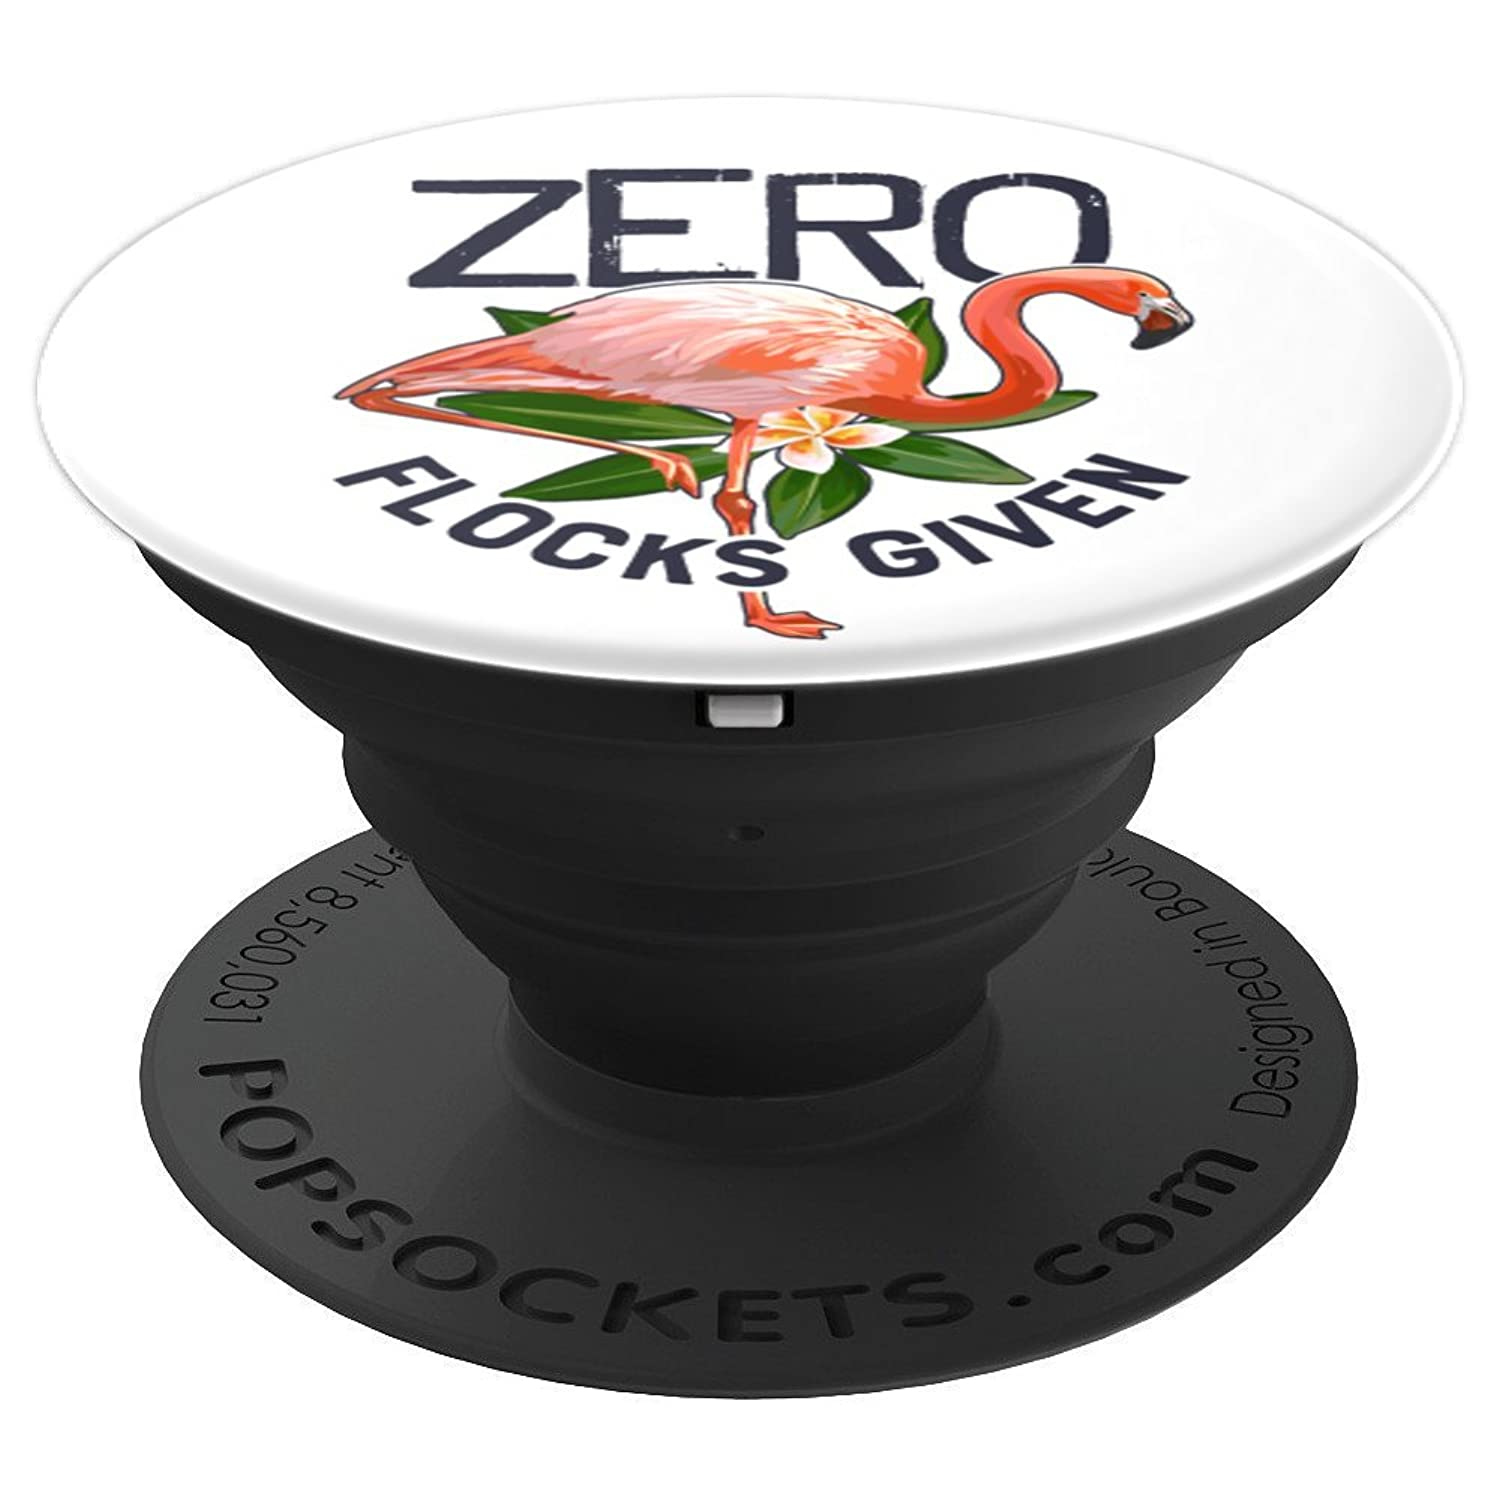 Zero Flocks Given Cute Pink Flamingo Flowers White Floral - PopSockets Grip and Stand for Phones and Tablets